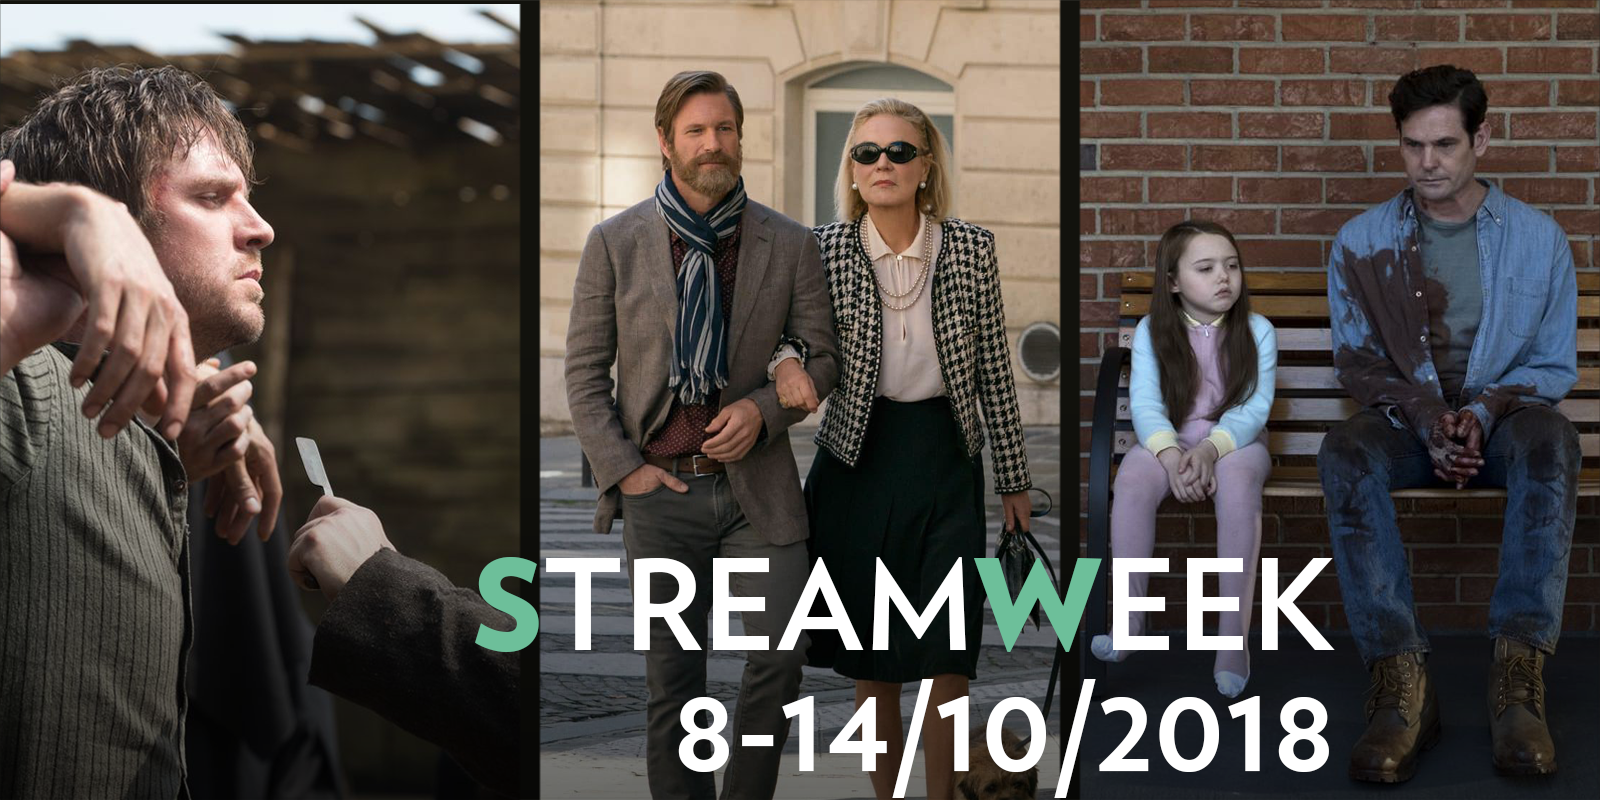 StreamWeek: The Haunting of Hill House è la miglior serie Netflix dell'anno?